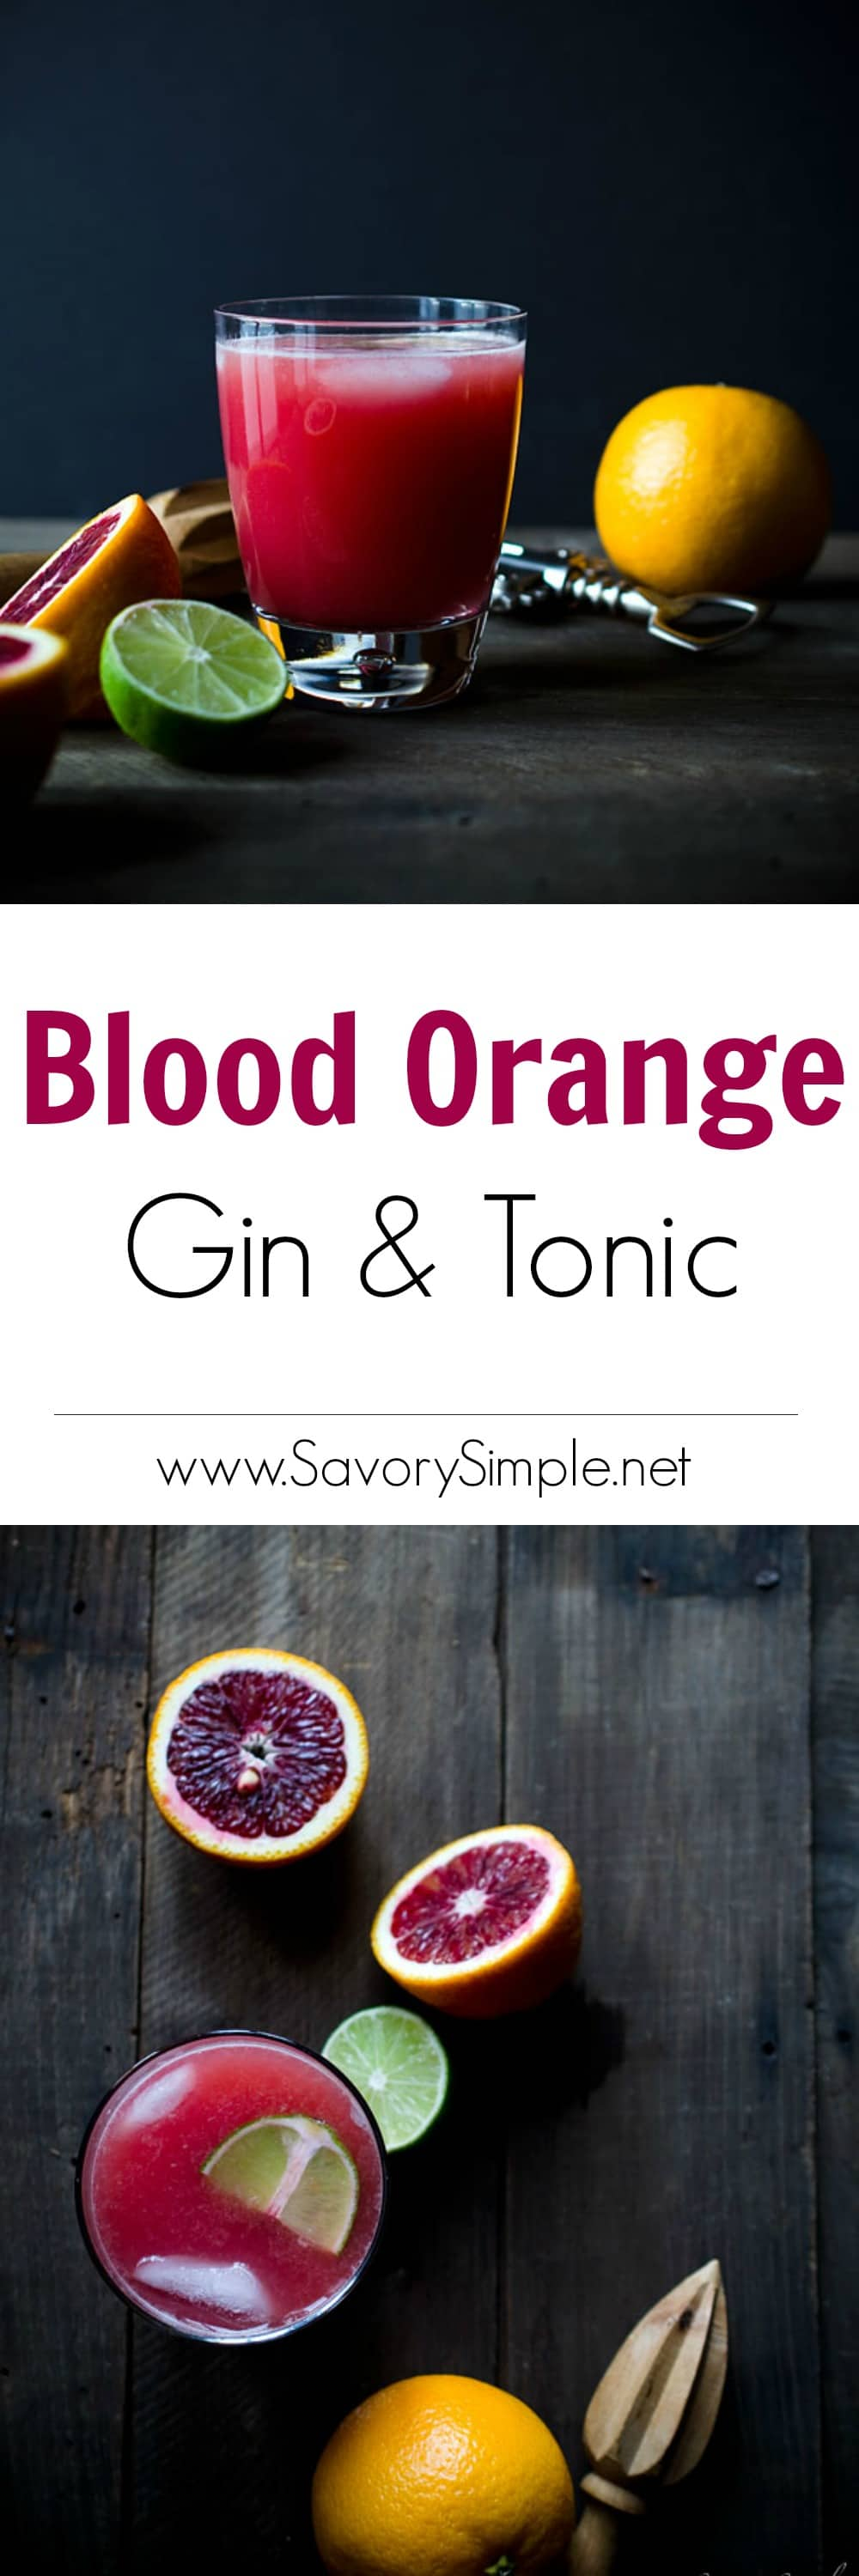 This Blood Orange Gin and Tonic is a vibrant, sweet and citrusy cocktail made with high quality ingredients! Get the recipe from SavorySimple.net.